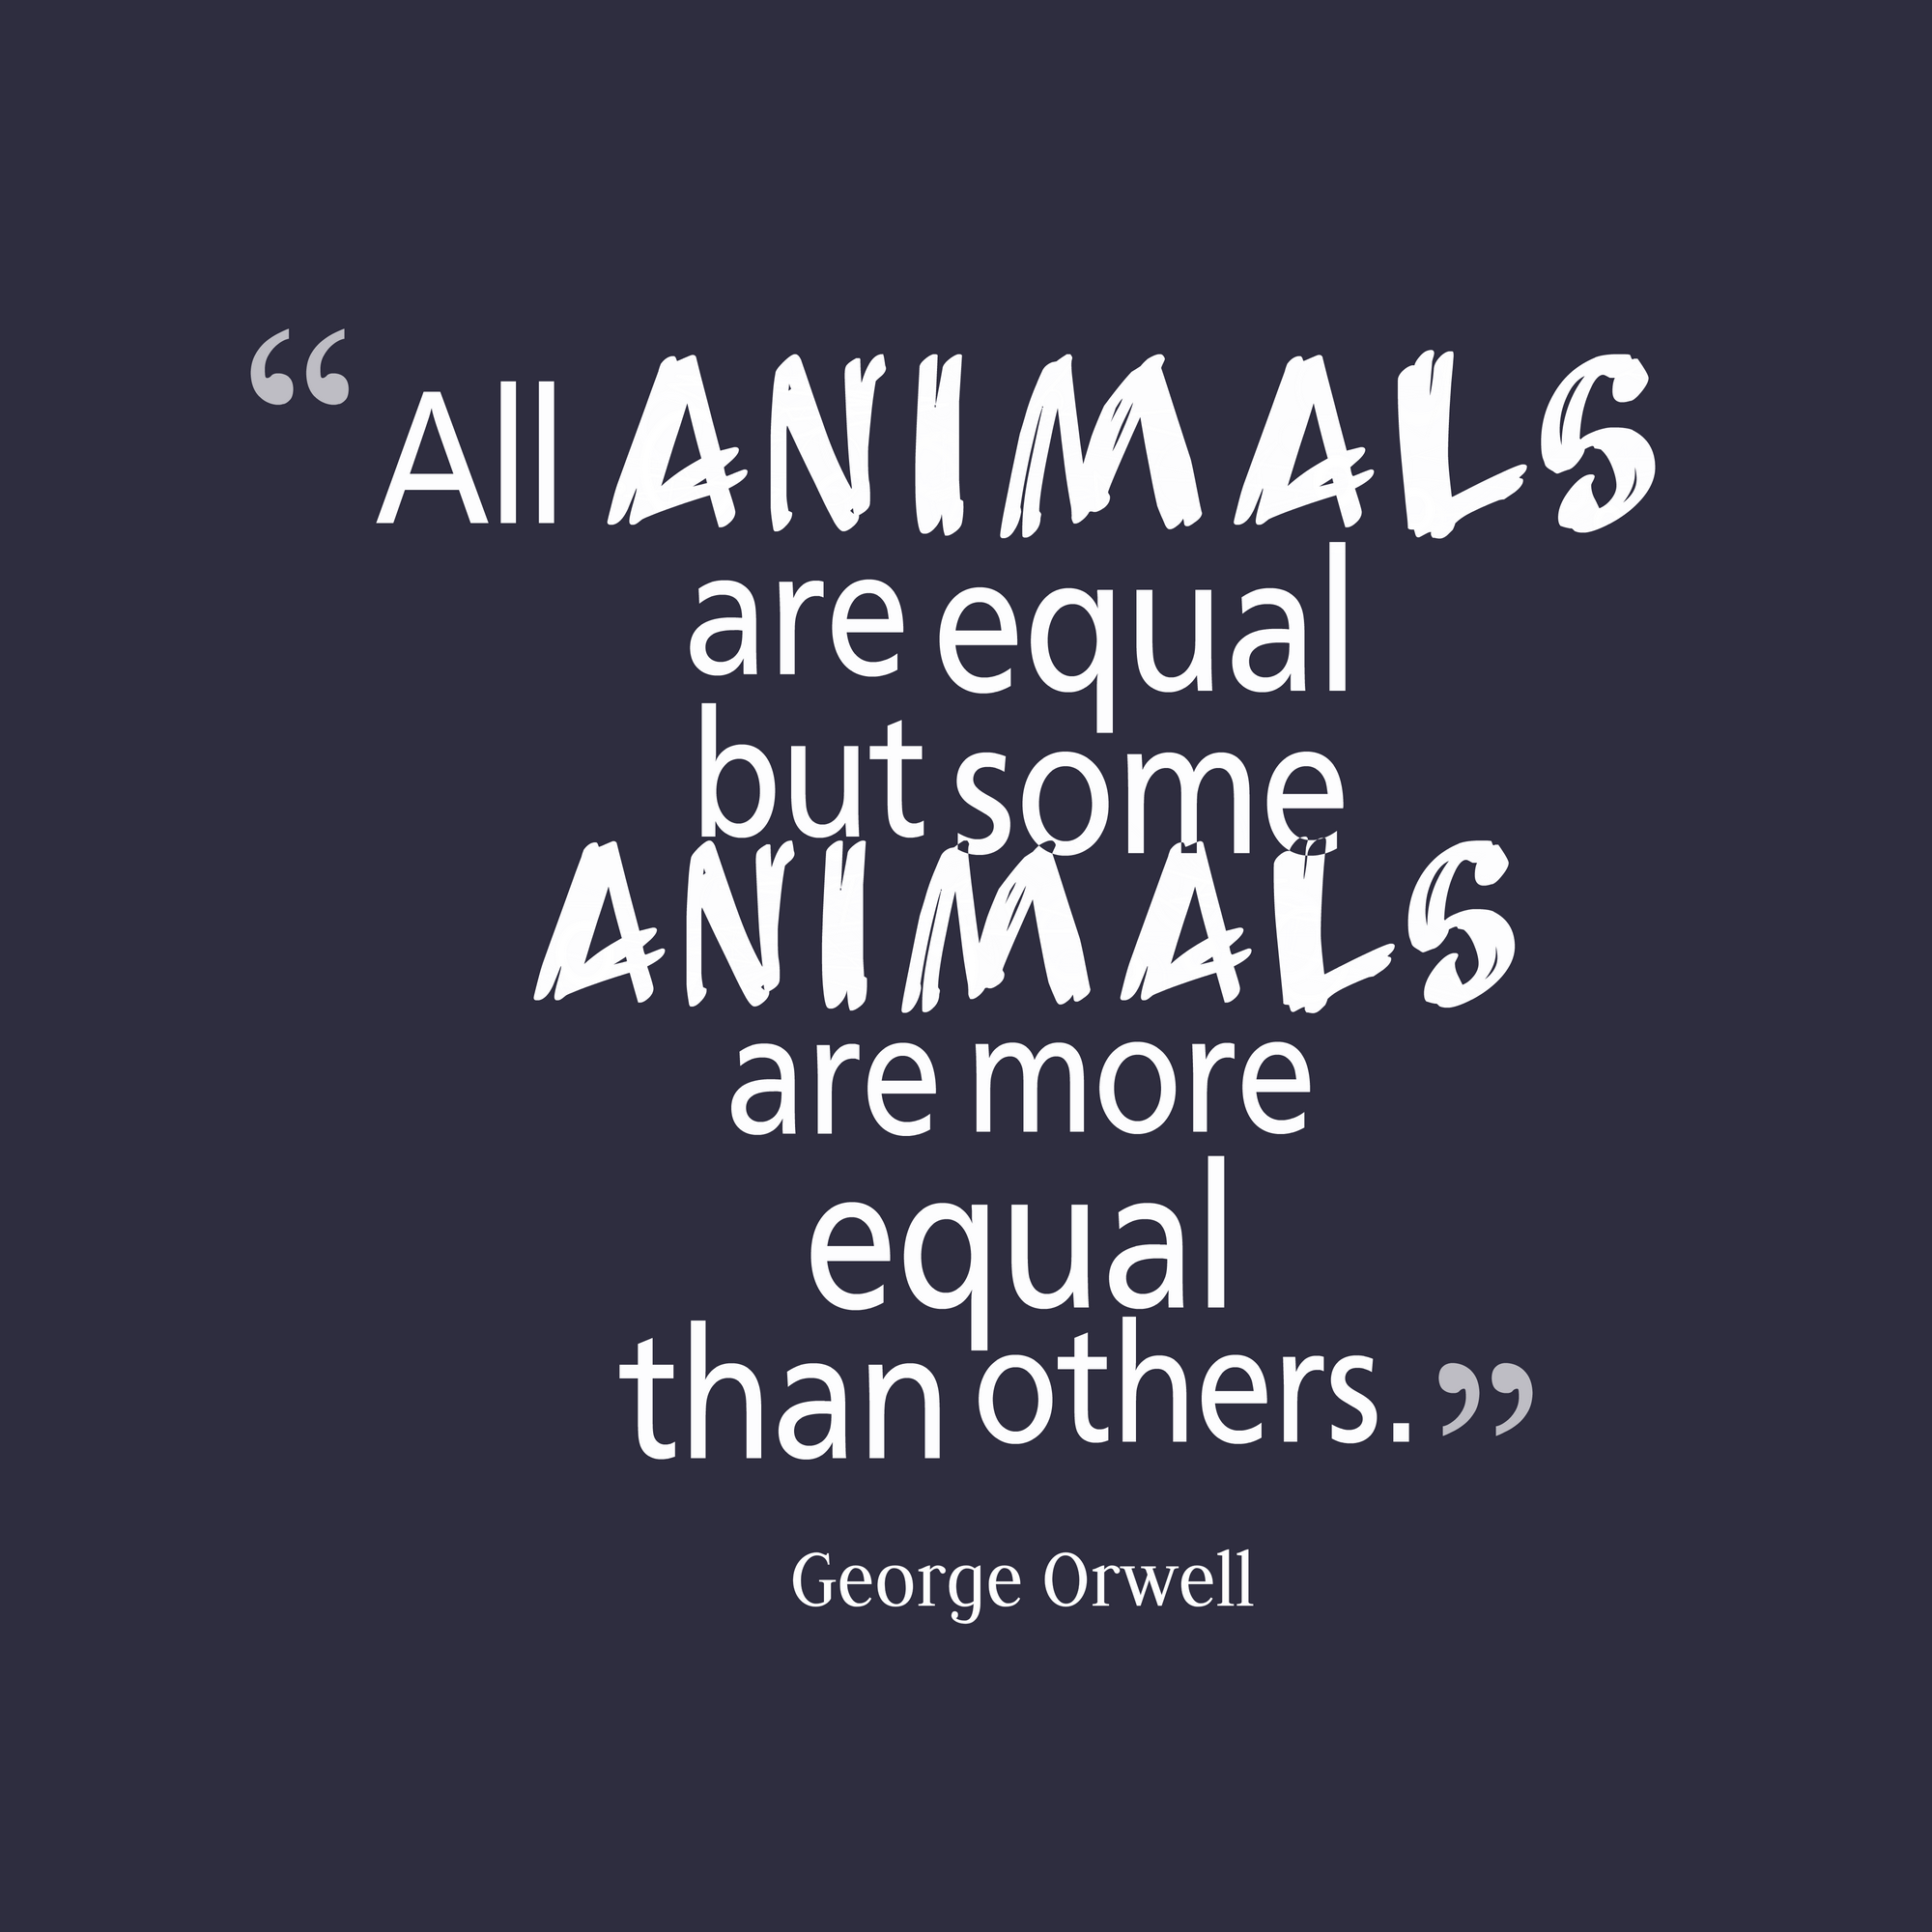 Animal Farm Quotes All Animals Are Equal But Some Animals Are More Equal Than Others